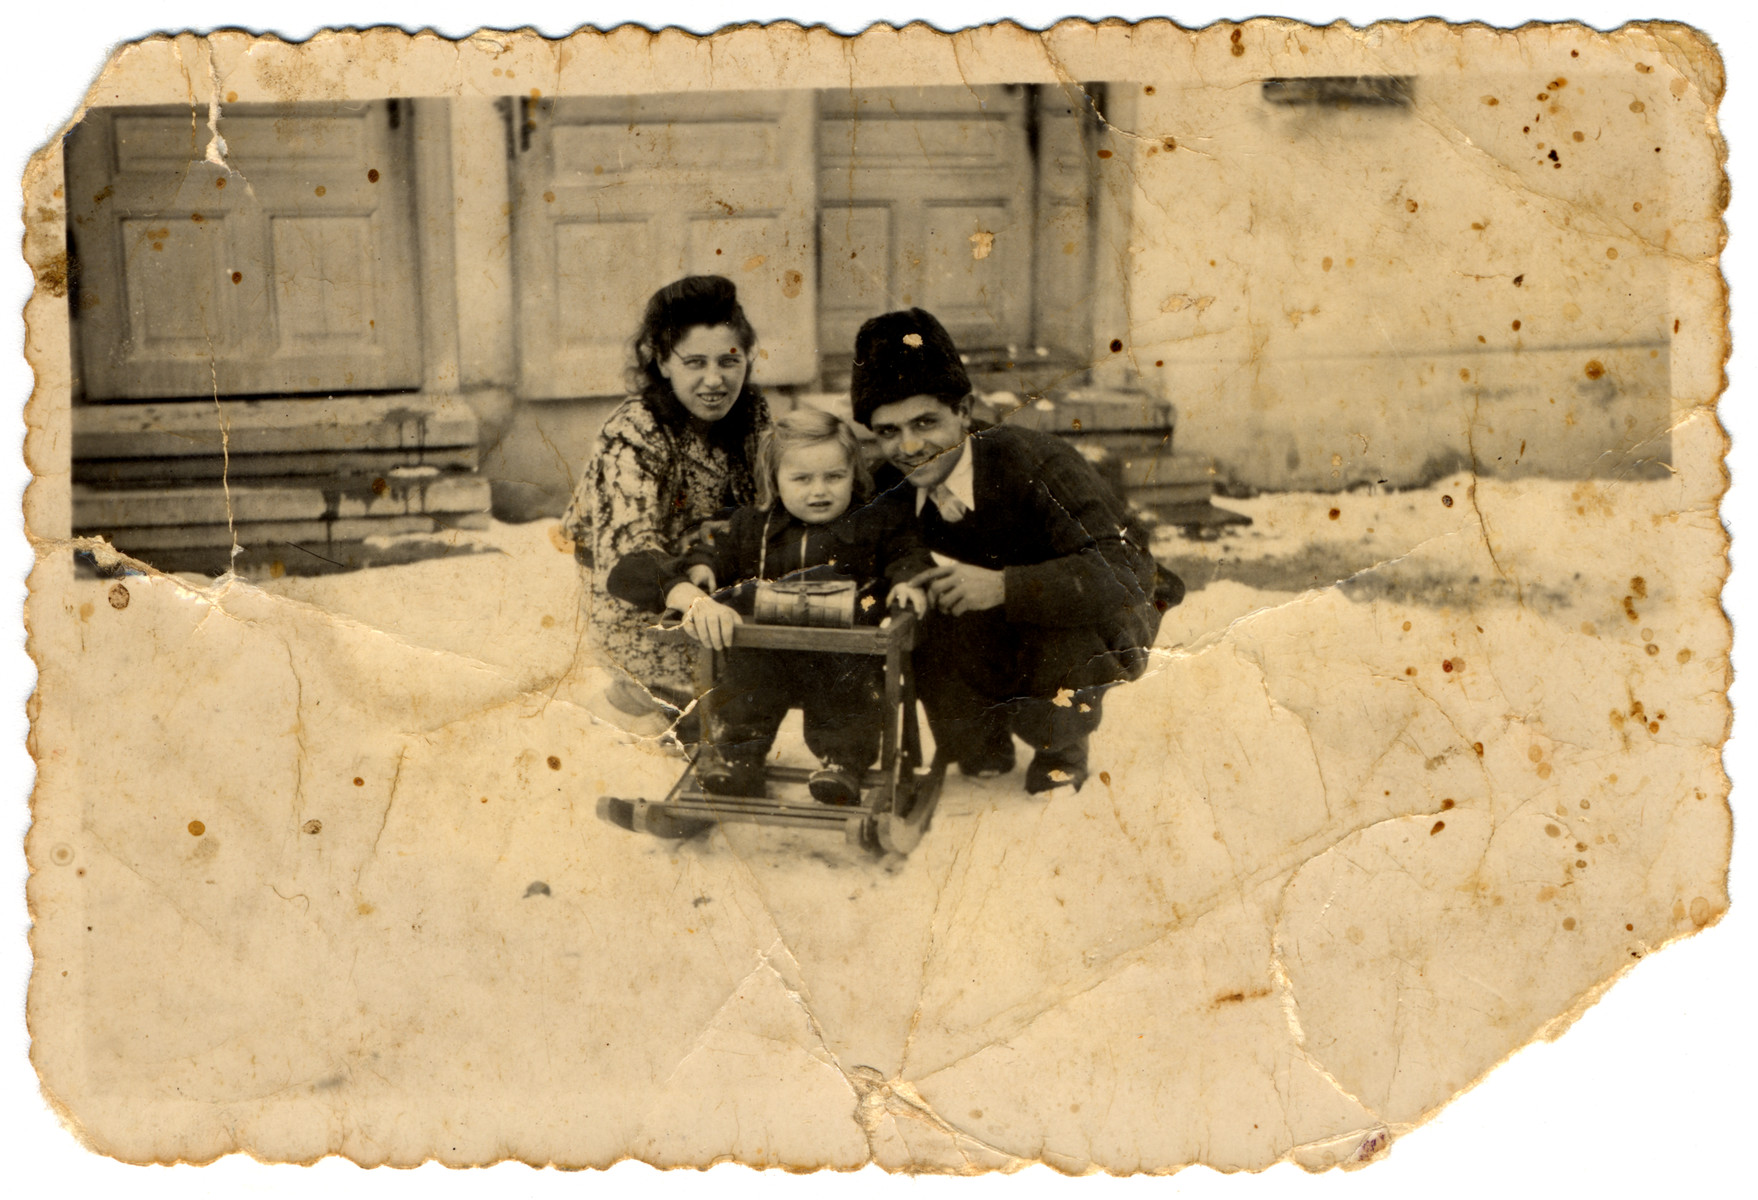 Yevgeniy and his first wife Rozsi play with their young son in the snow.